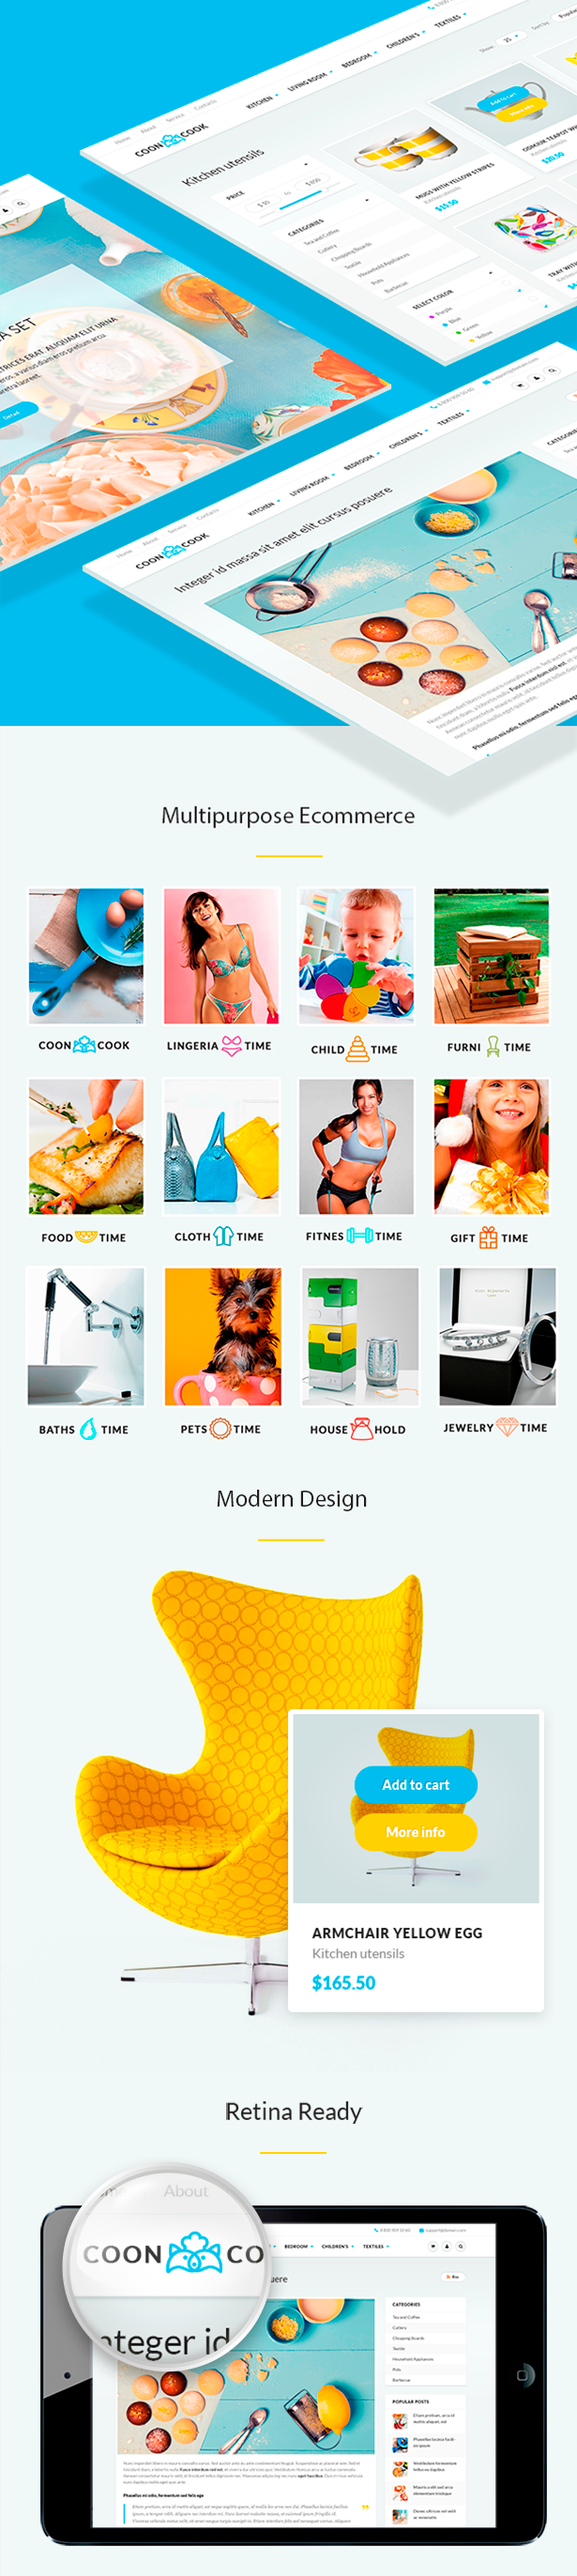 CoonCook - HTML Template for Online Store - 1